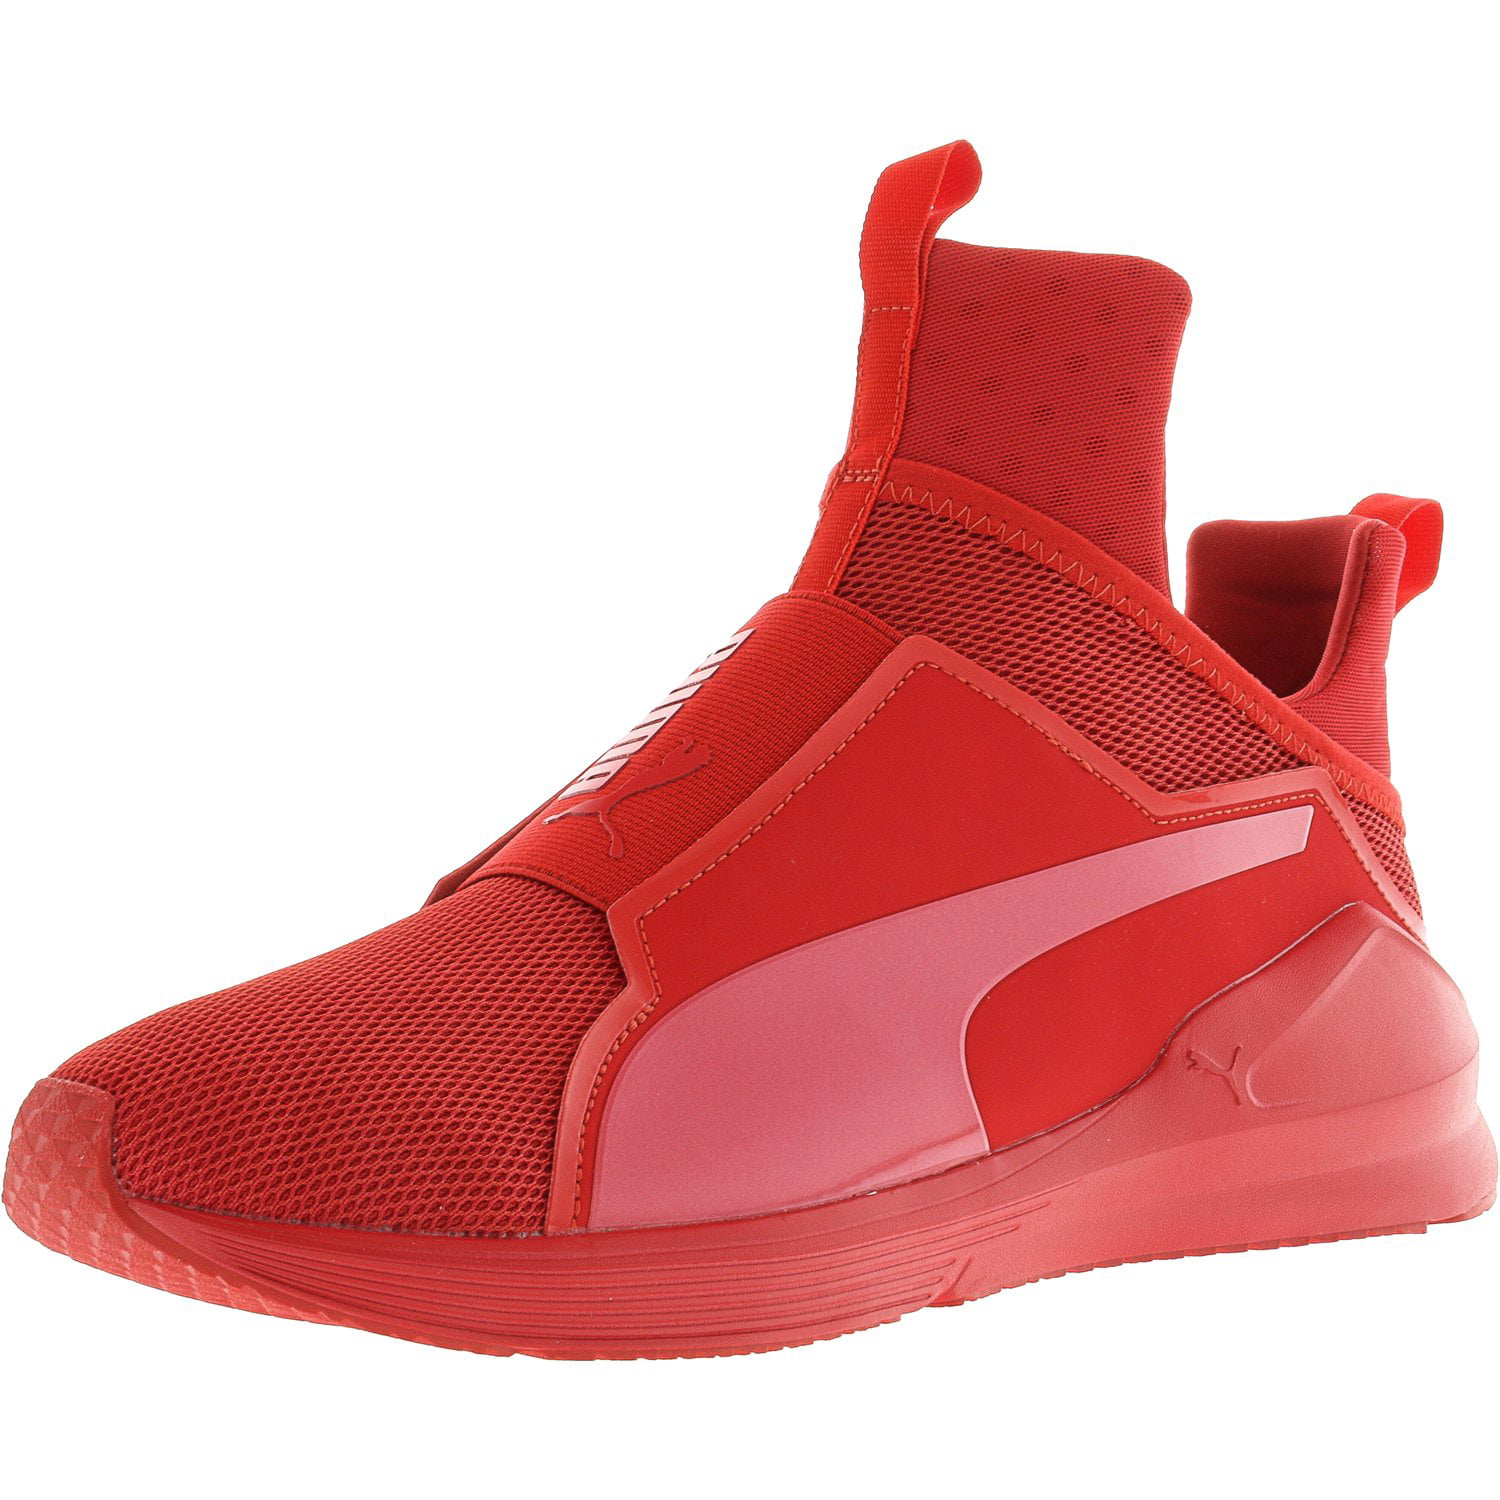 Puma Men's Fierce Core High Risk Red   Ankle-High Training Shoes 11M by Puma